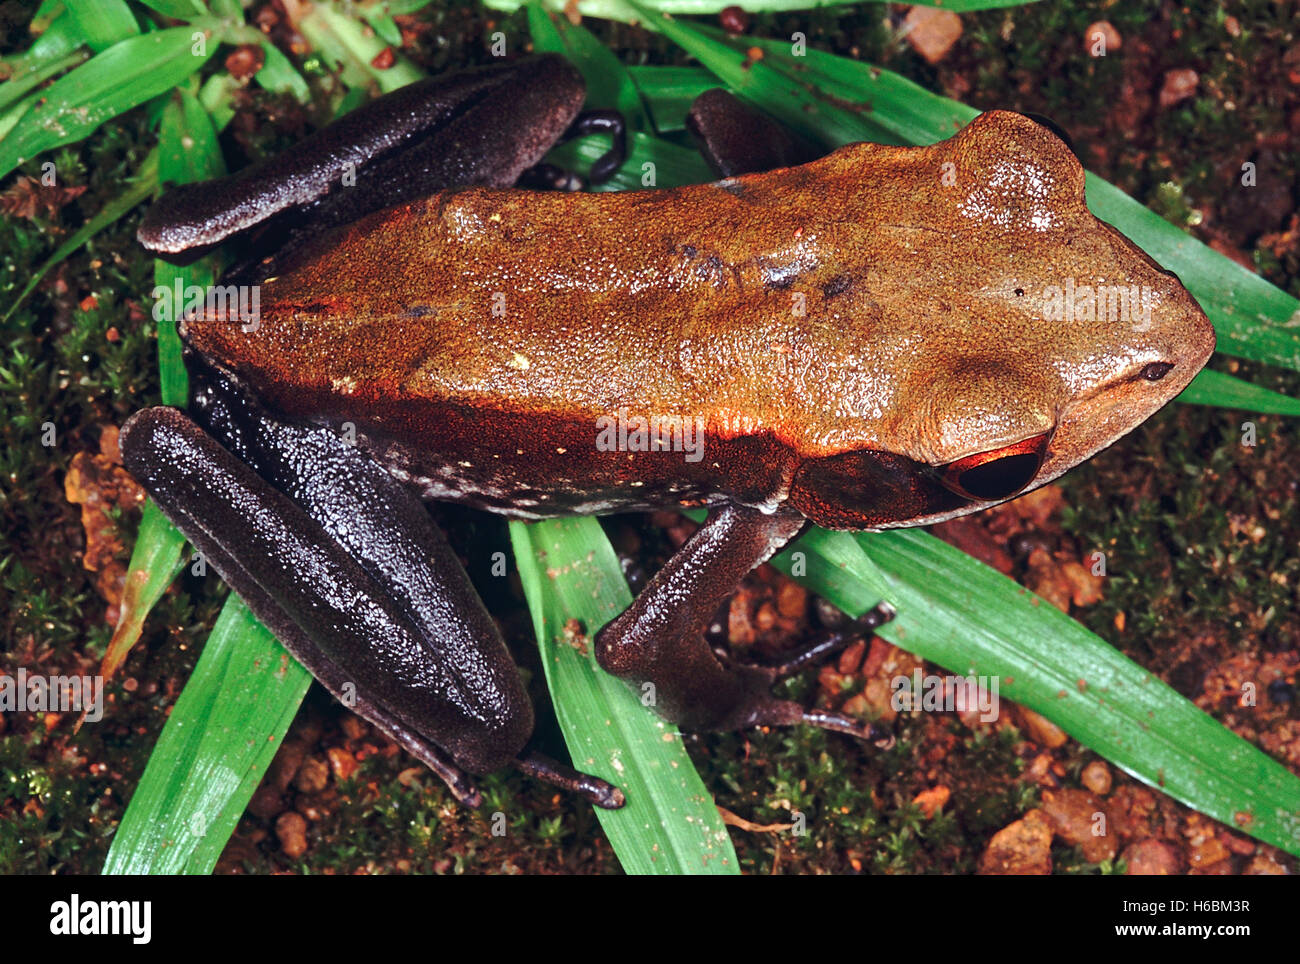 Rana Curtipes. Bicoloured frog. A forest frog which produces large reddish brown tadpoles that develop in forest - Stock Image